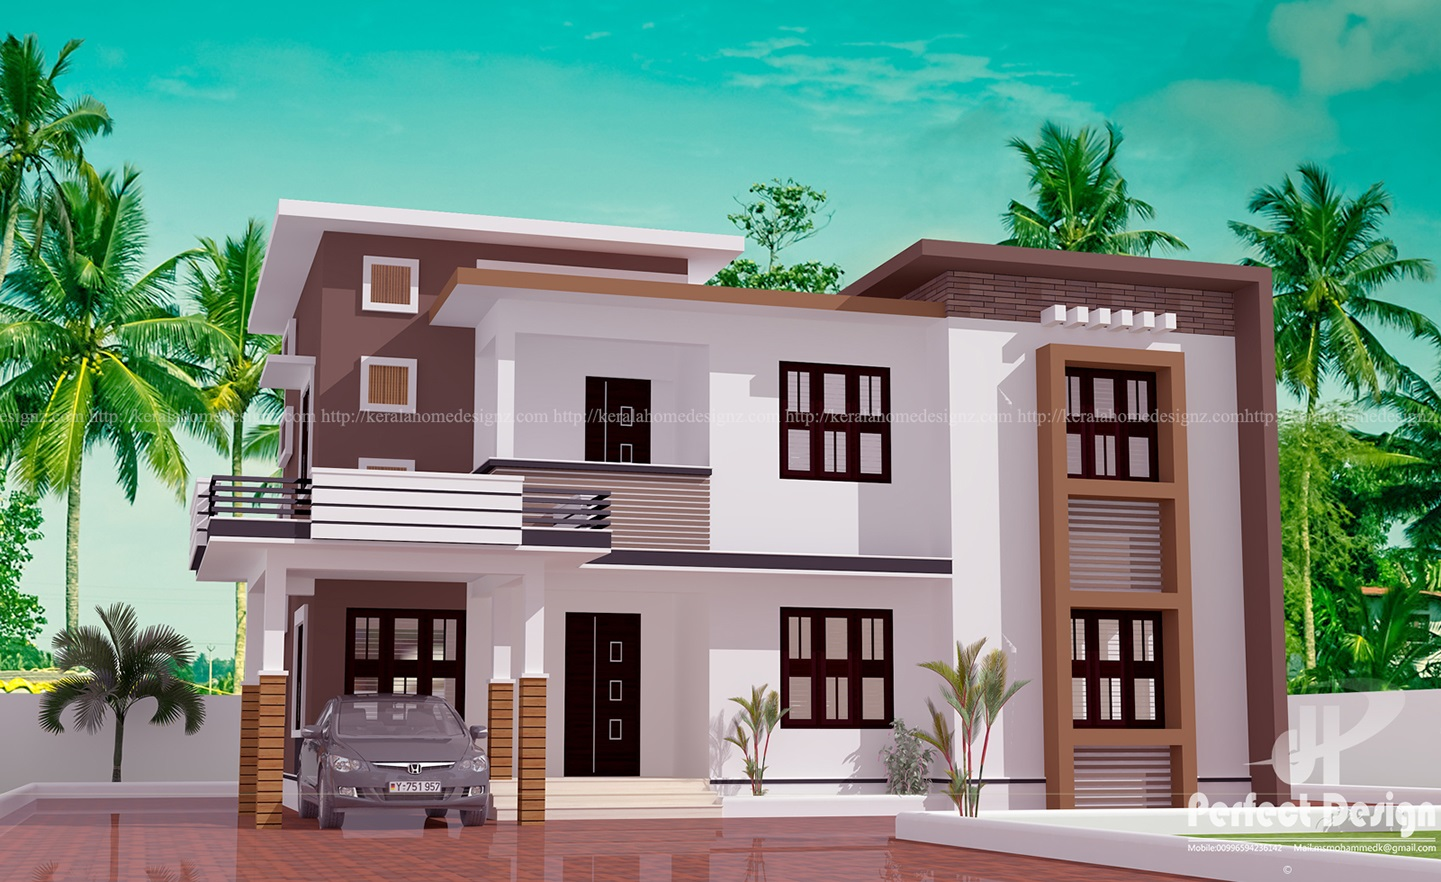 Contemporary 2 story kerala home design kerala home design for Kerala home designs com